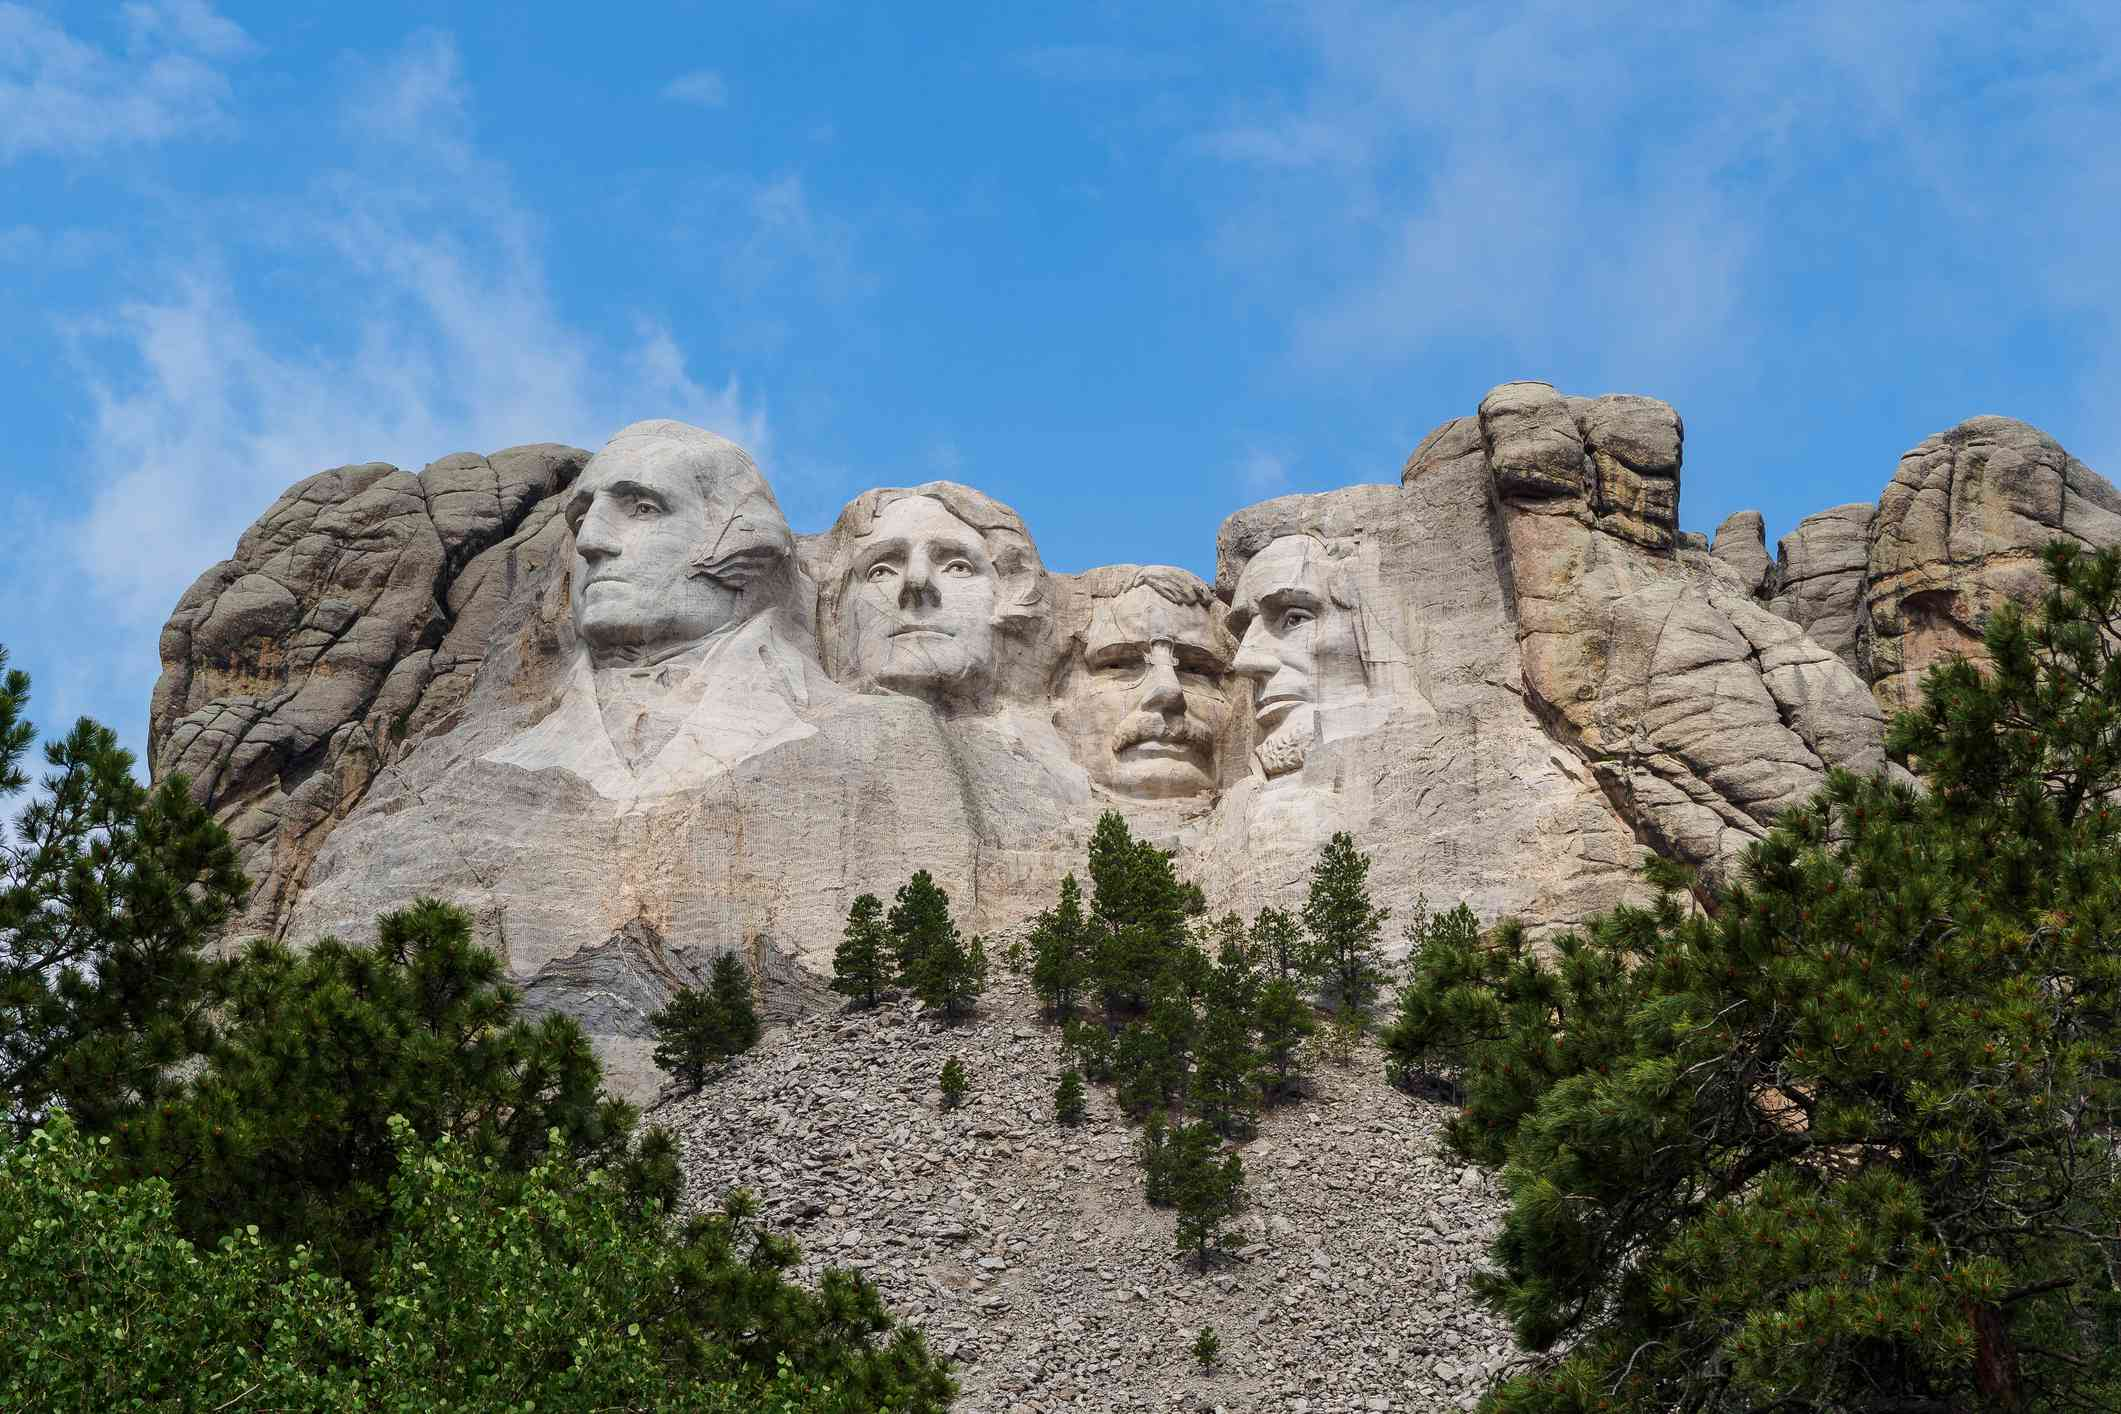 The faces of four past US Presidents carved on a granite face of Mount Rushmore in the Black Hills in Keystone, South Dakota with blue skies and light white clouds above